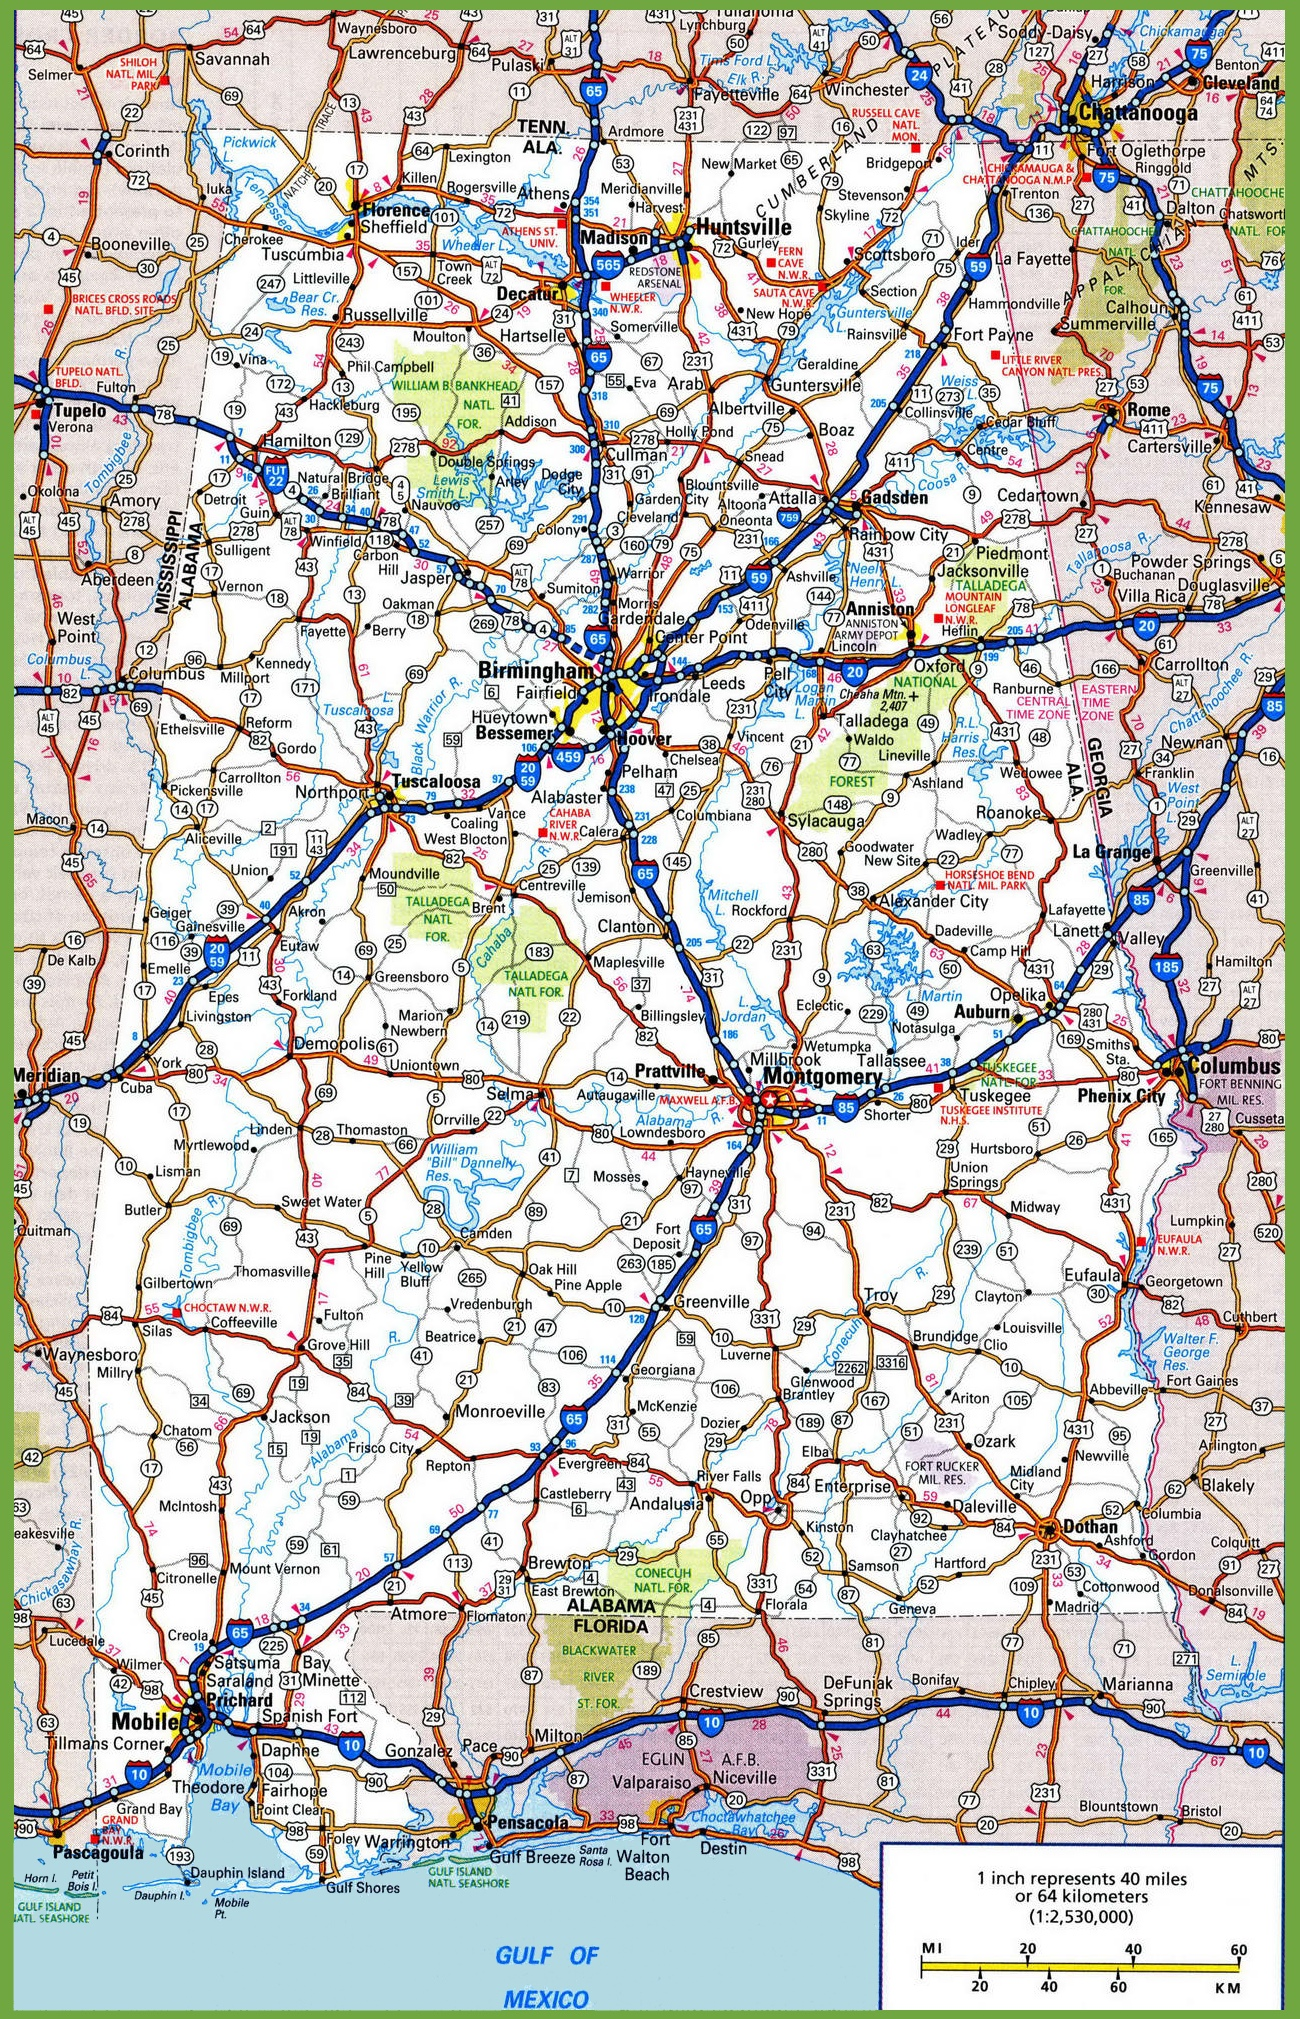 Alabama road map on interstate highway map, interstate map of alabama showing, interstate highways in georgia, interstate map of montgomery alabama, cahaba river alabama, interstate 20 map alabama, mobile alabama, i-20 alabama,